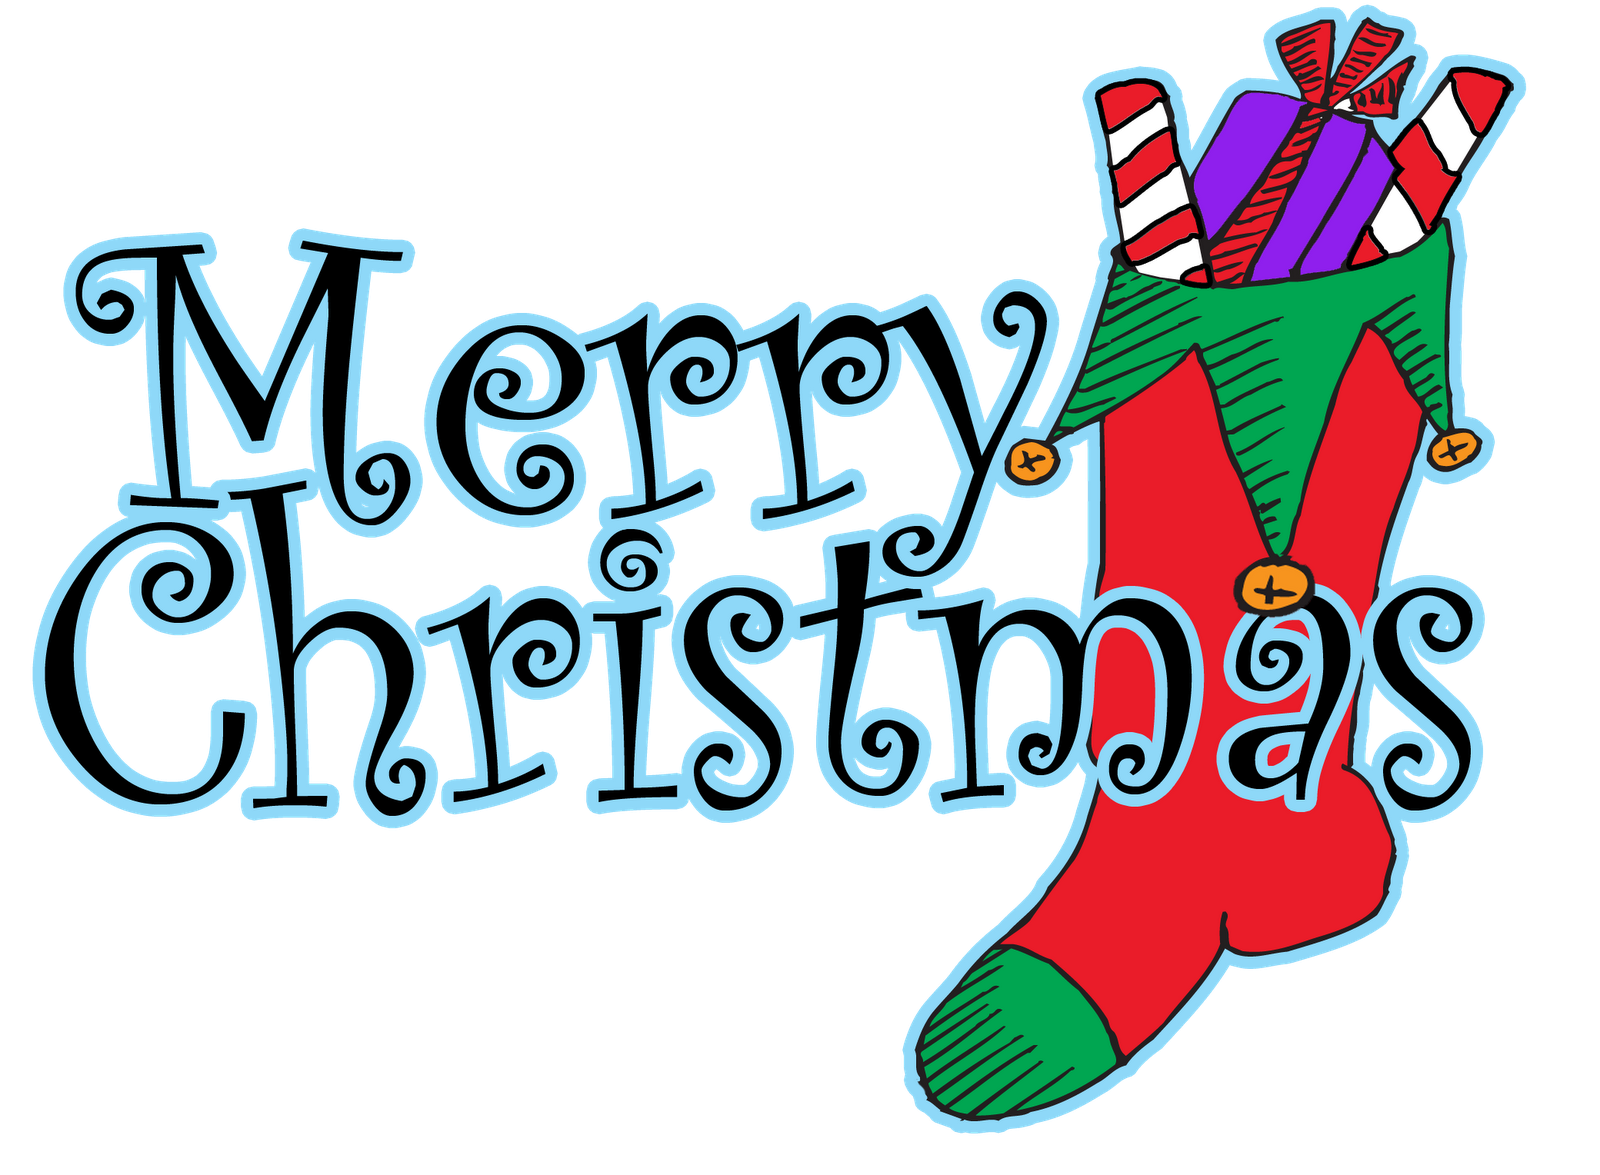 Merry christmas clipart religious. Transparent png pictures free